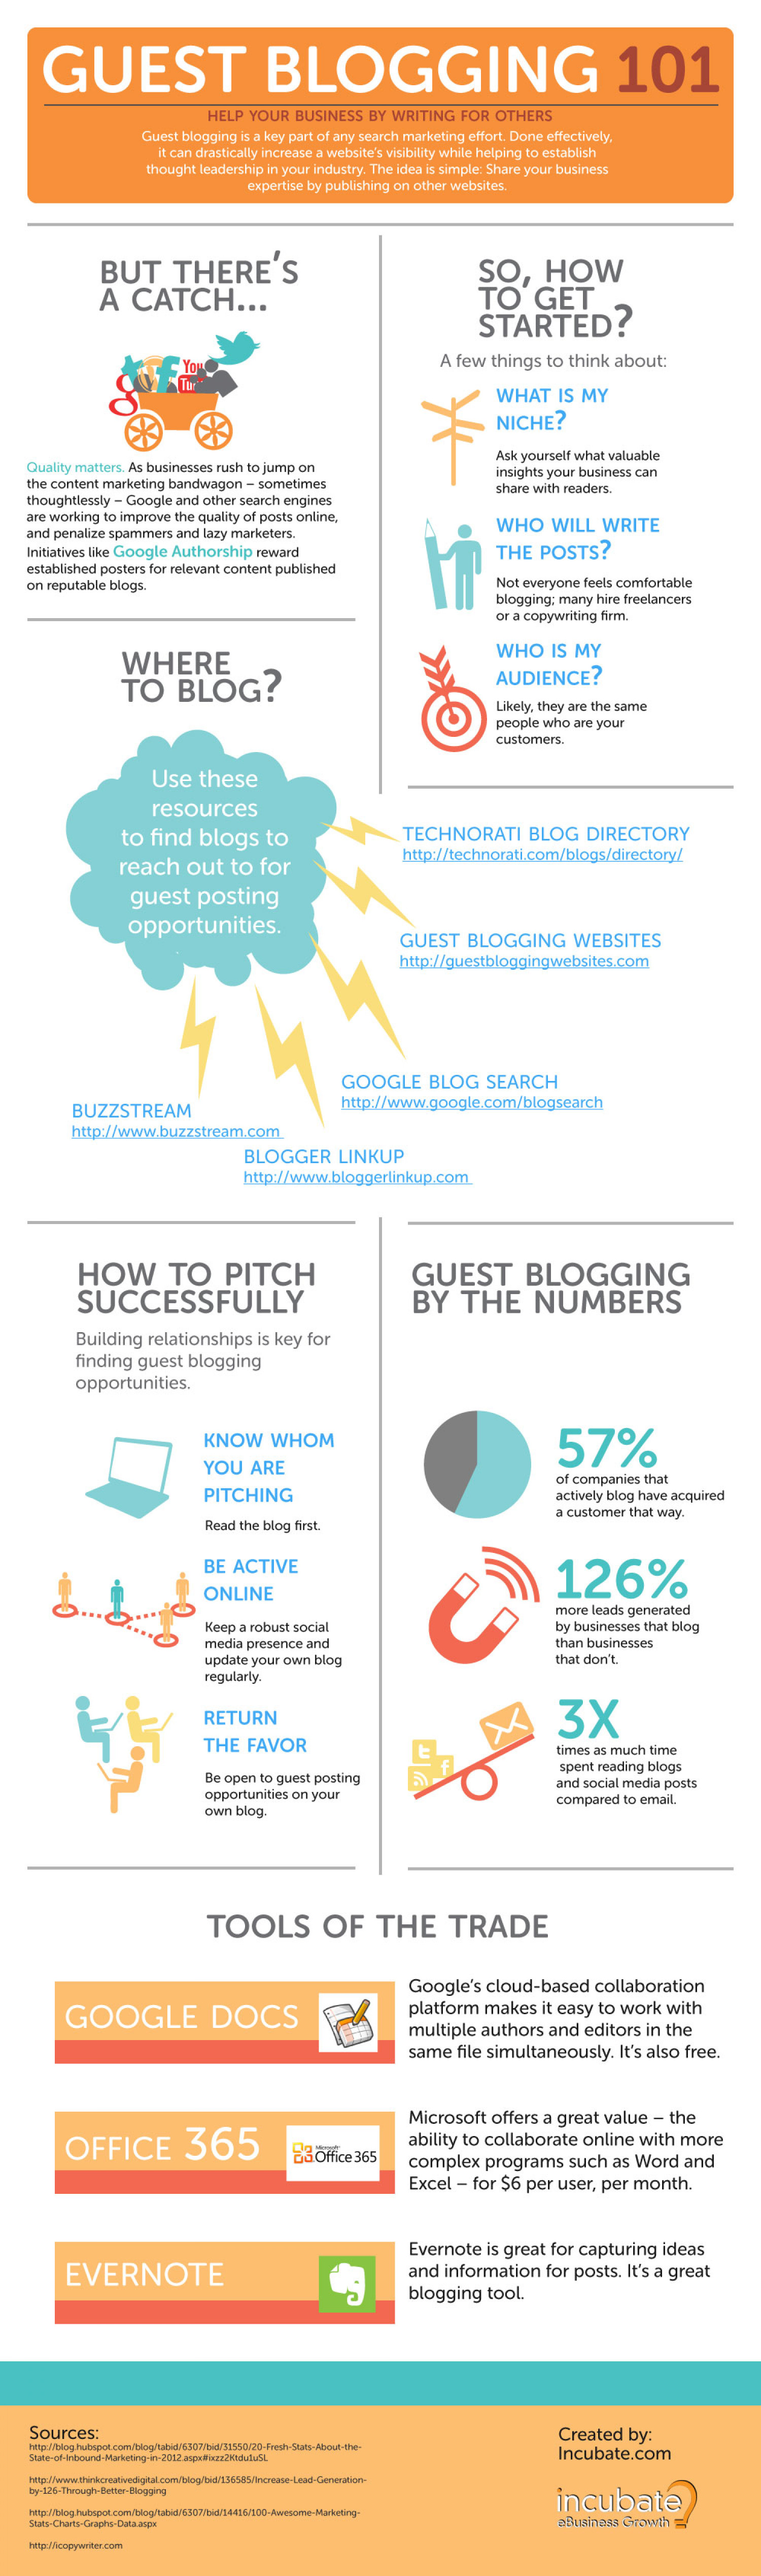 Guest Blogging Tips Infographic